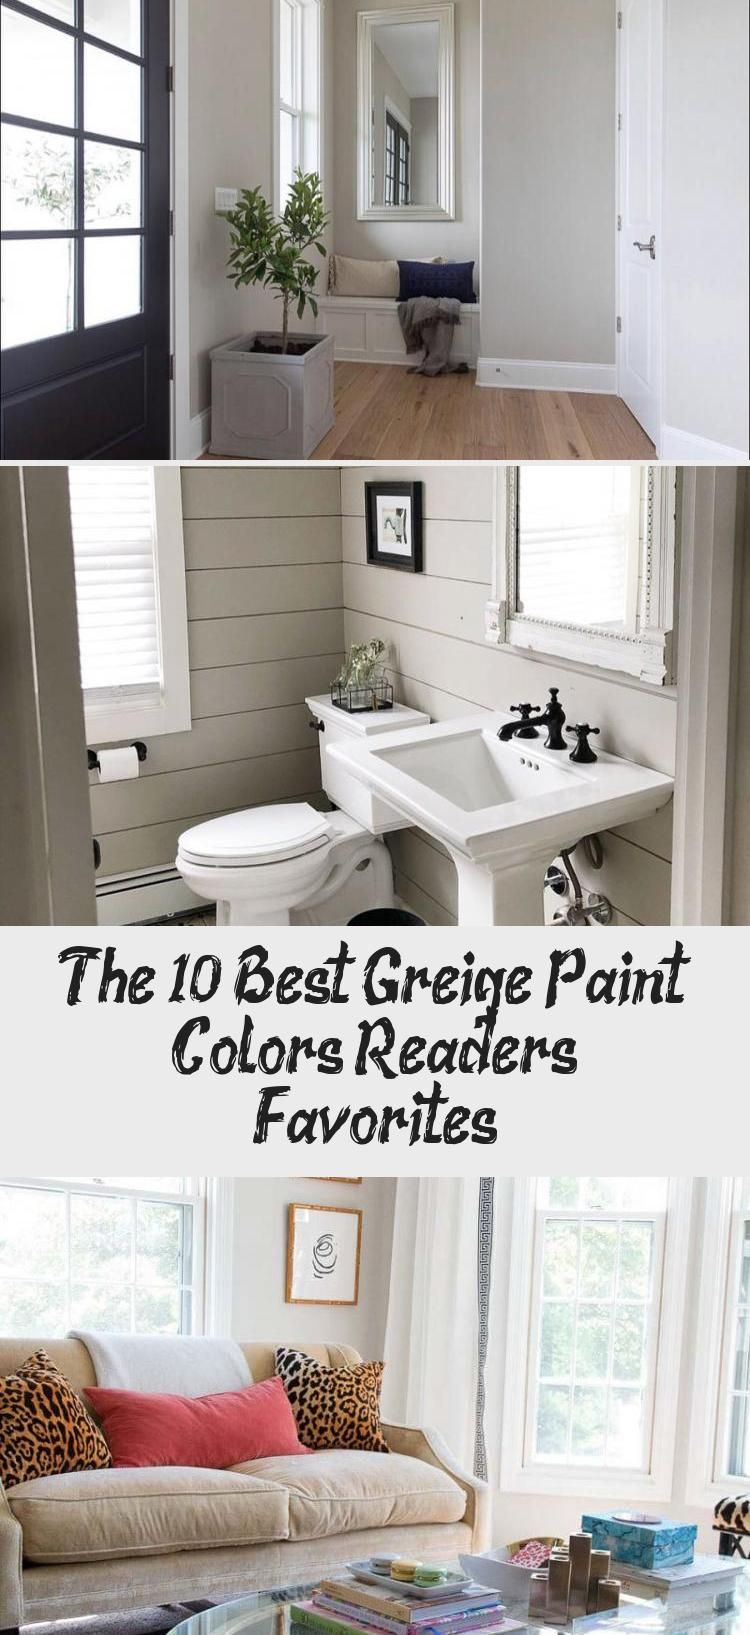 Most Popular Bedroom Colors 2020 Sherwin Williams